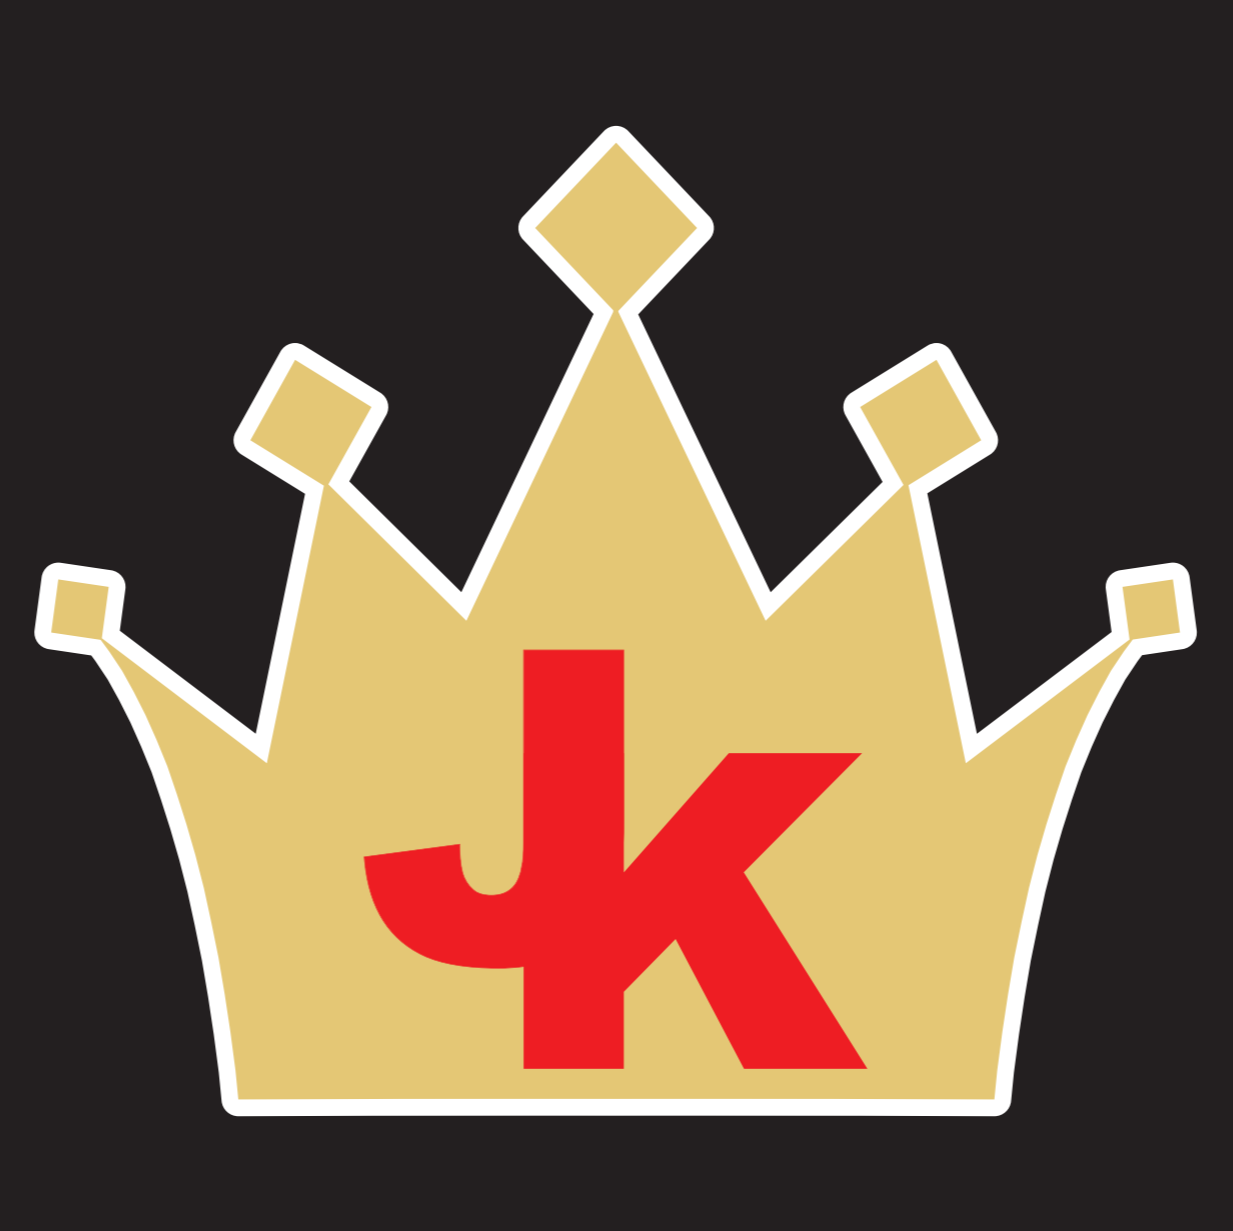 The Junk King